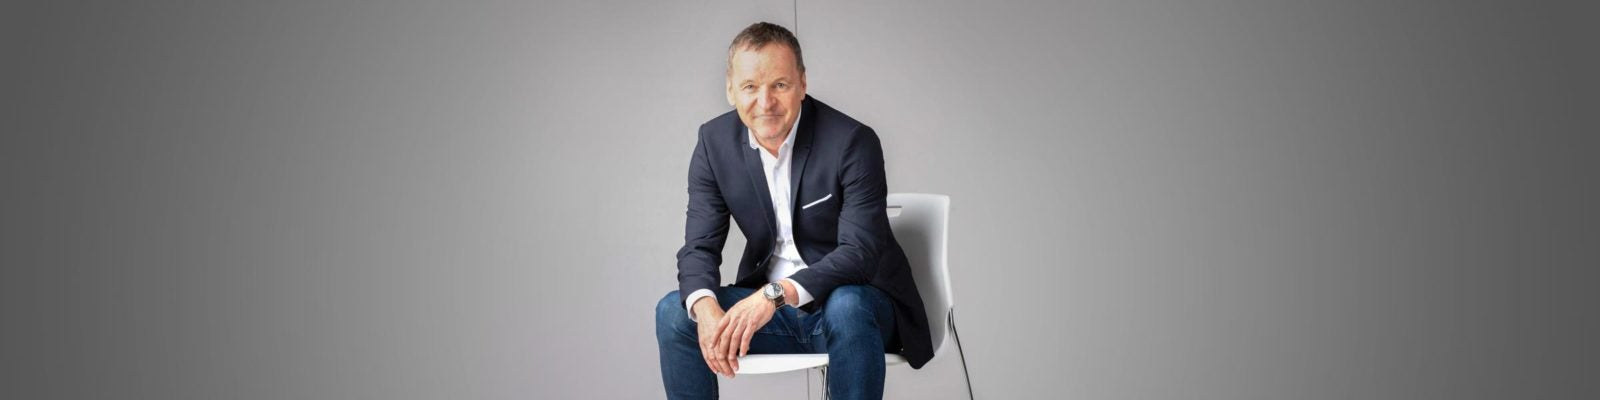 Clorox chair and CEO Benno Dorer sits in a chair